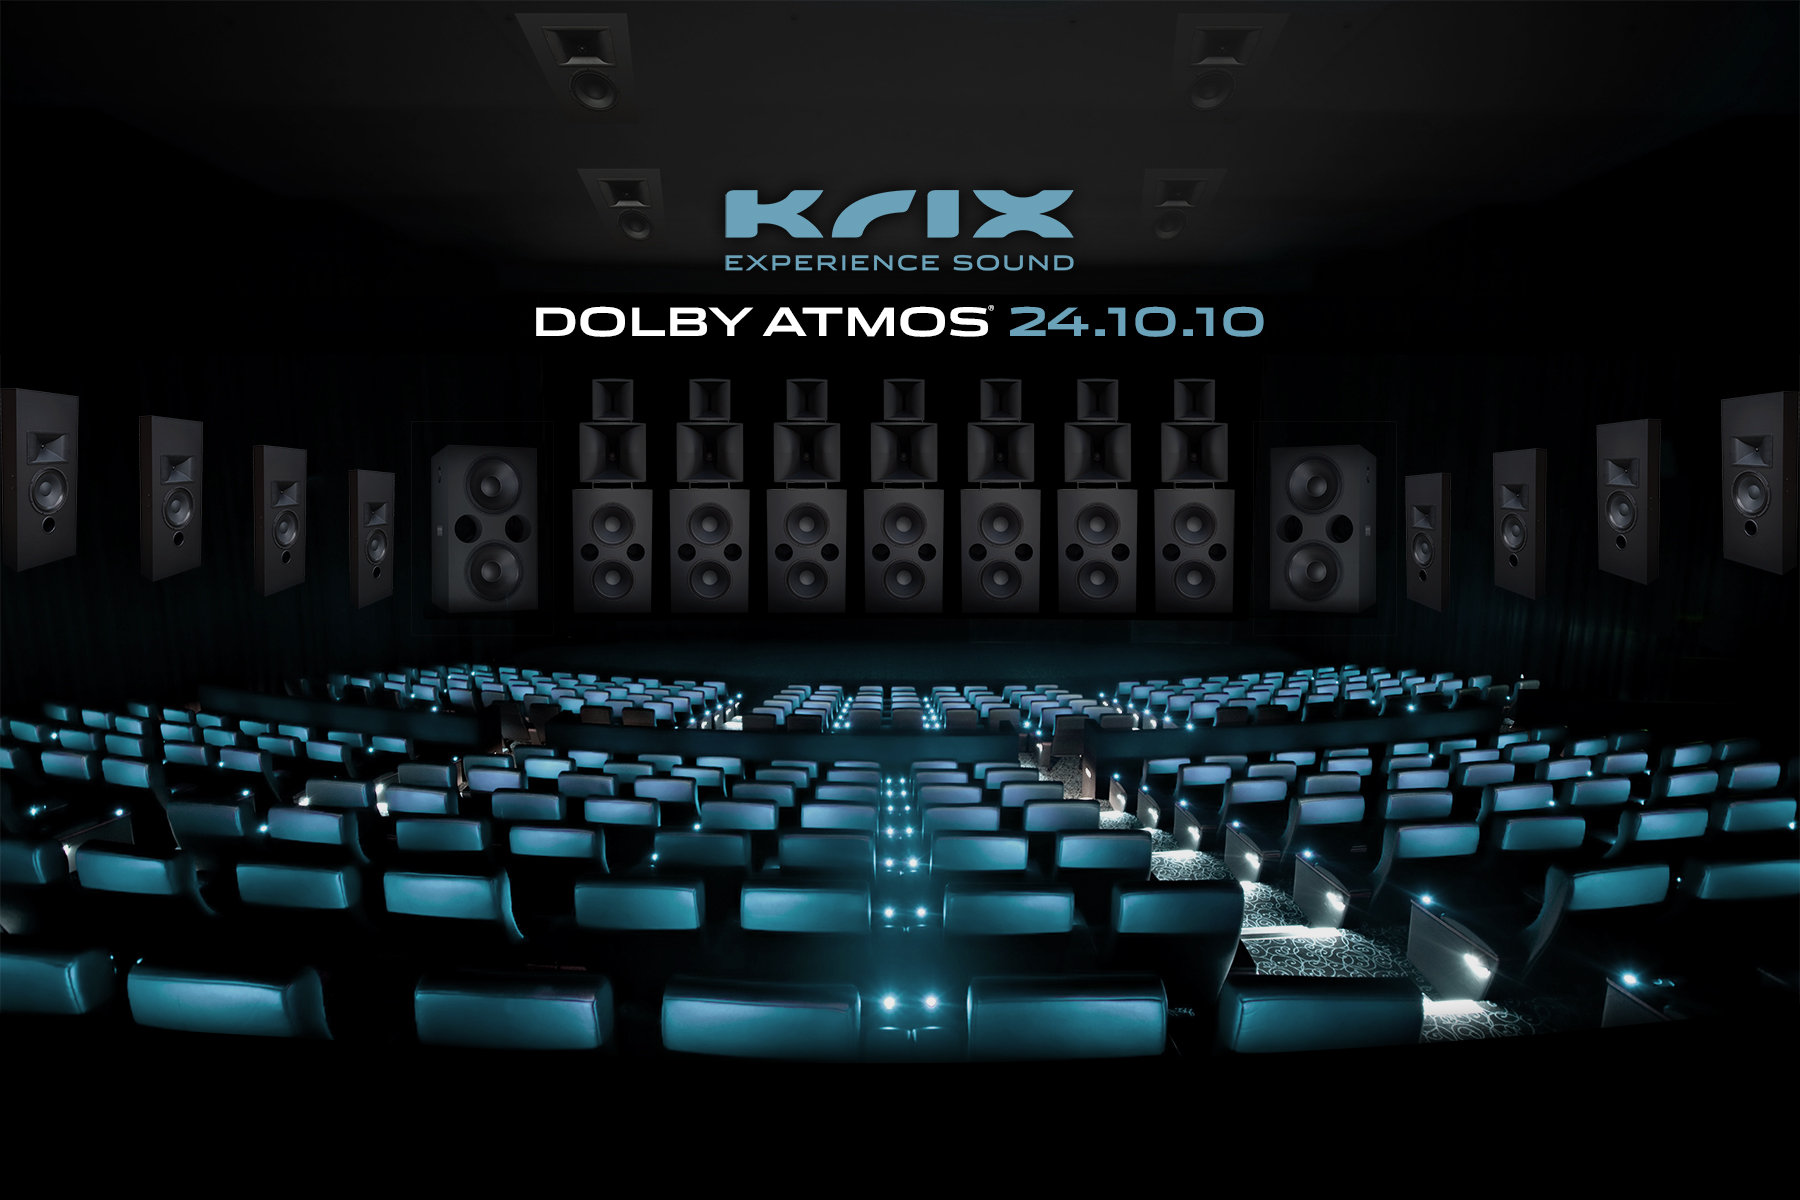 Krix 24.10.10 Dolby Atmos Demonstration